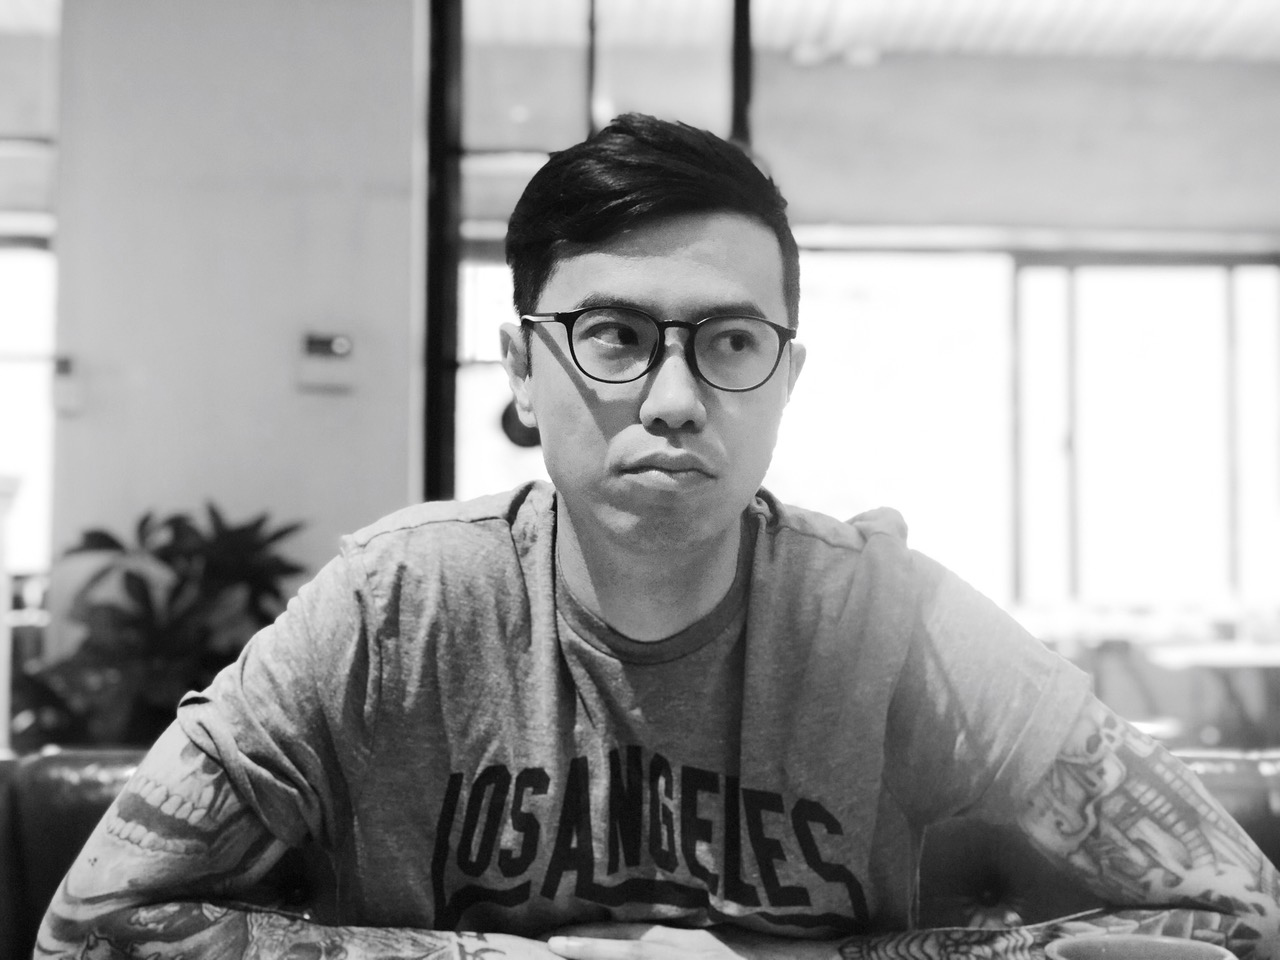 Ex-Publicis Sapient Senior Creative Director Daniel Tan joins TOMORROW Shanghai as their creative director